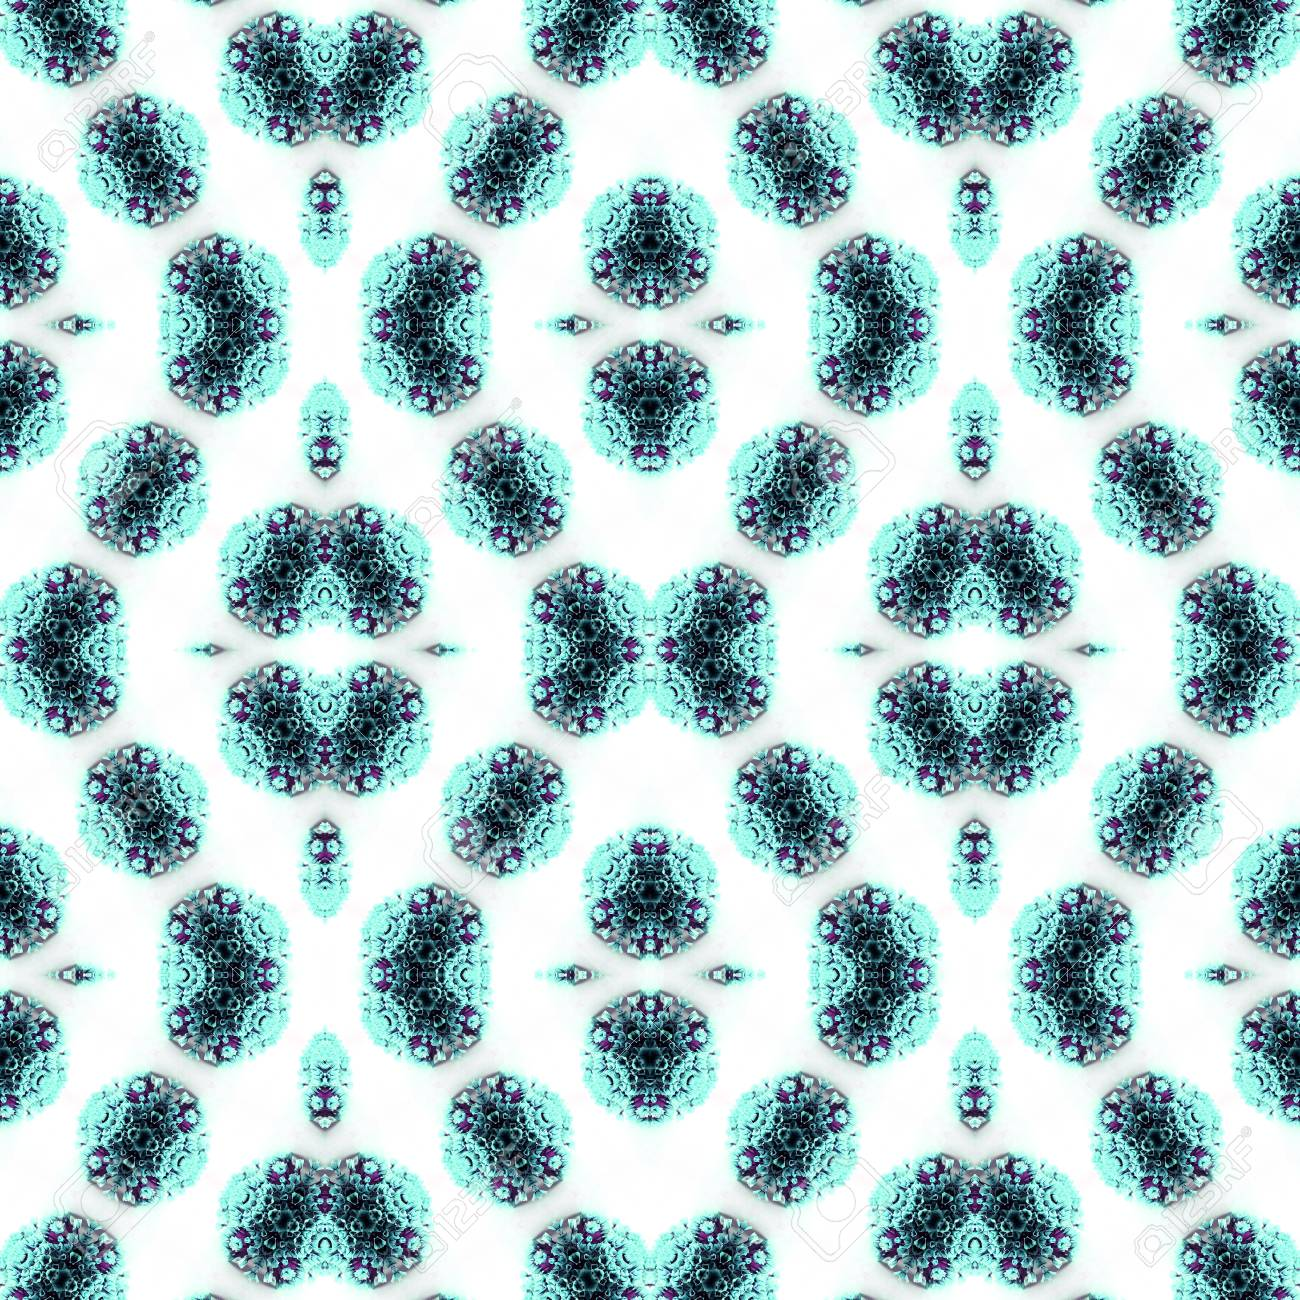 Abstract flowers seamless pattern background. Kaleidoscope from flowers. Hydraulic tile design. - 104075062